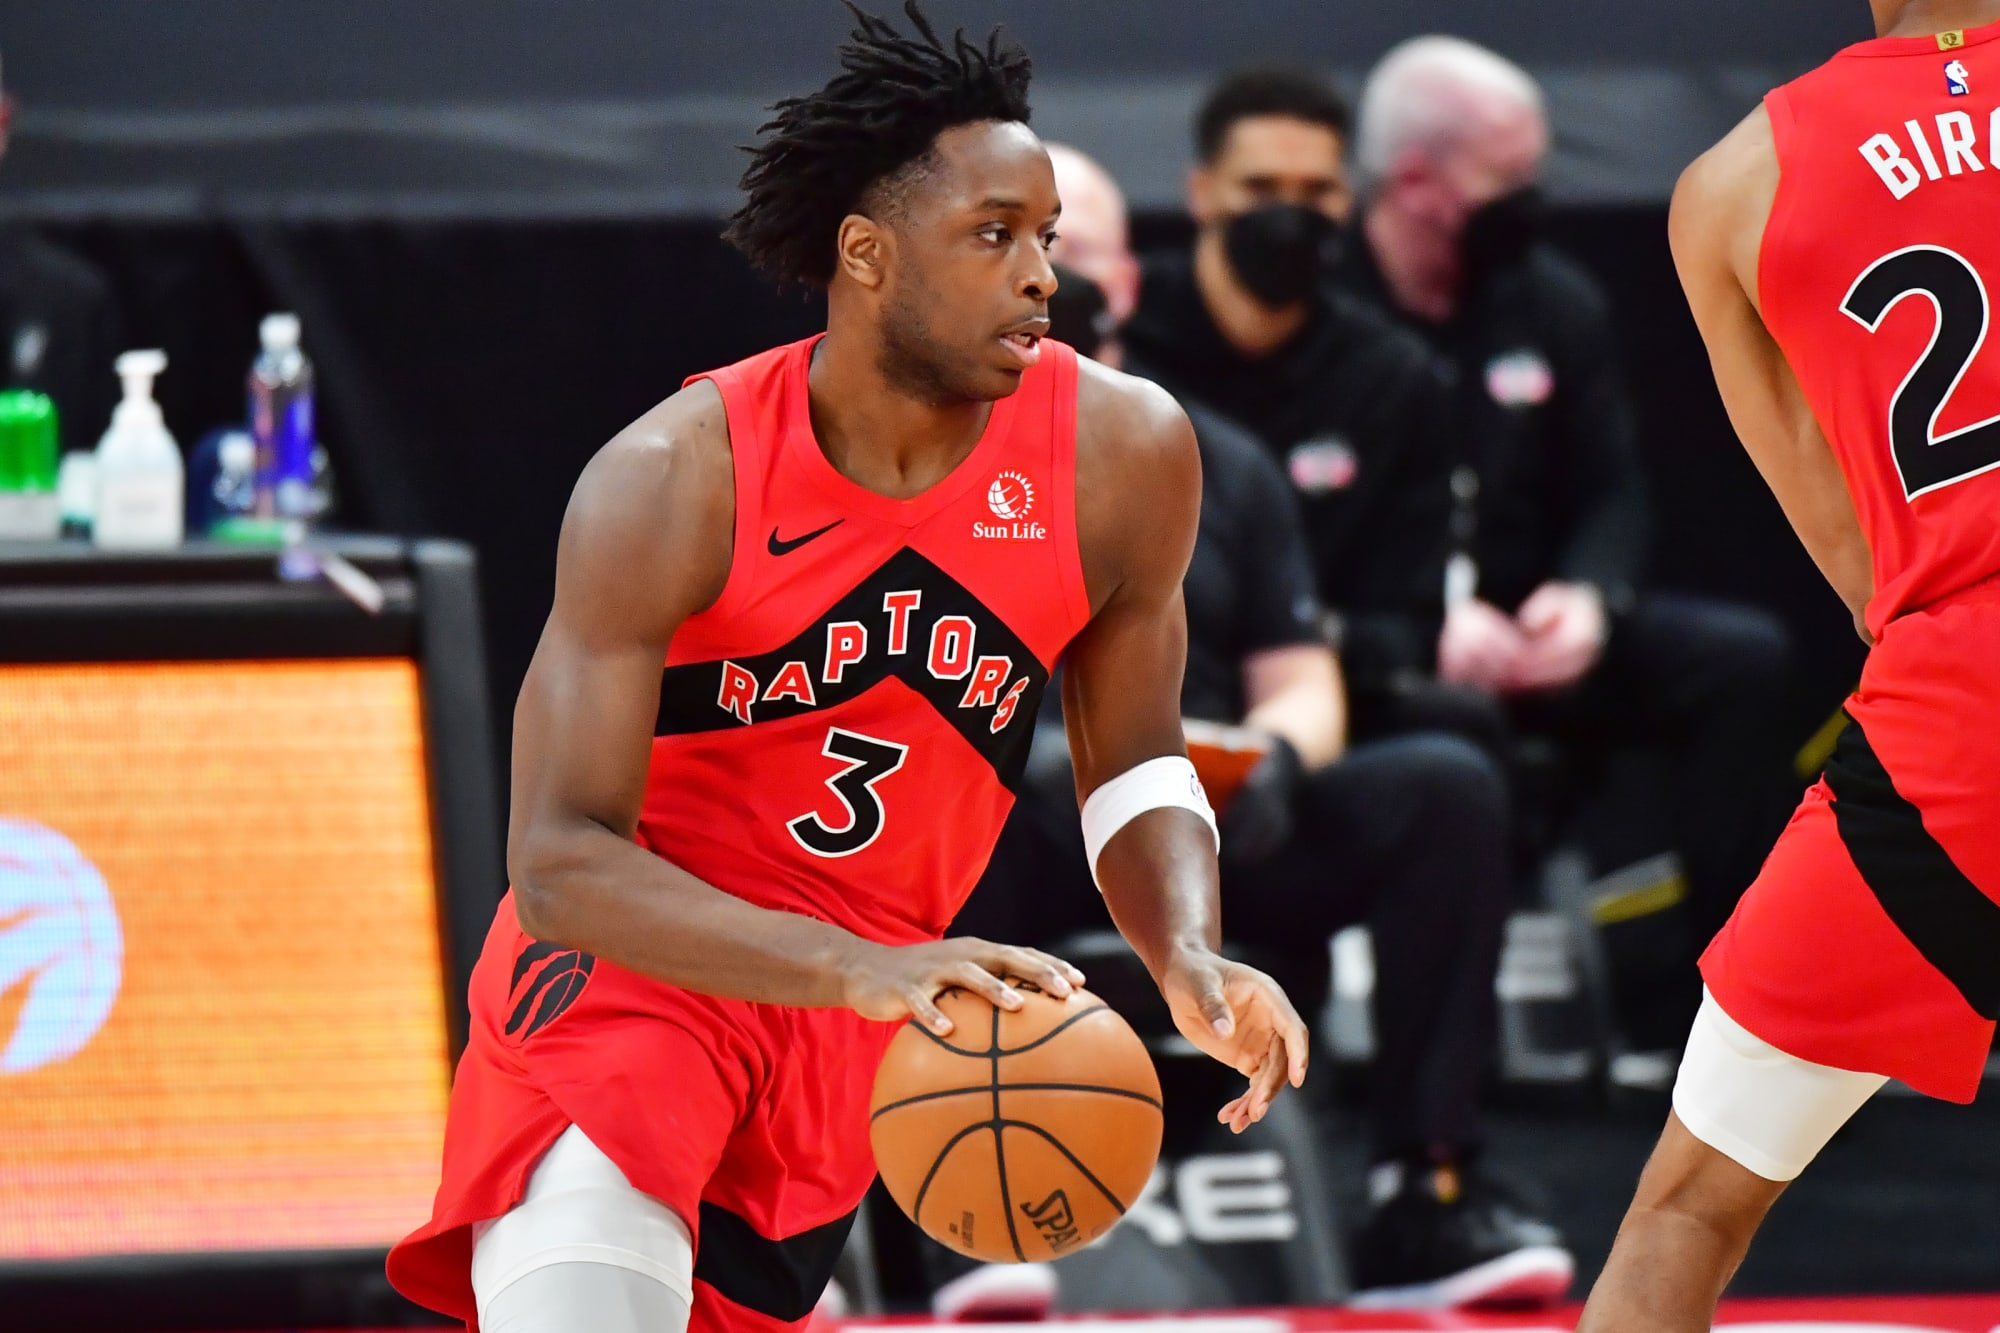 Toronto Raptors: Why OG Anunoby was snubbed from All-Defensive team